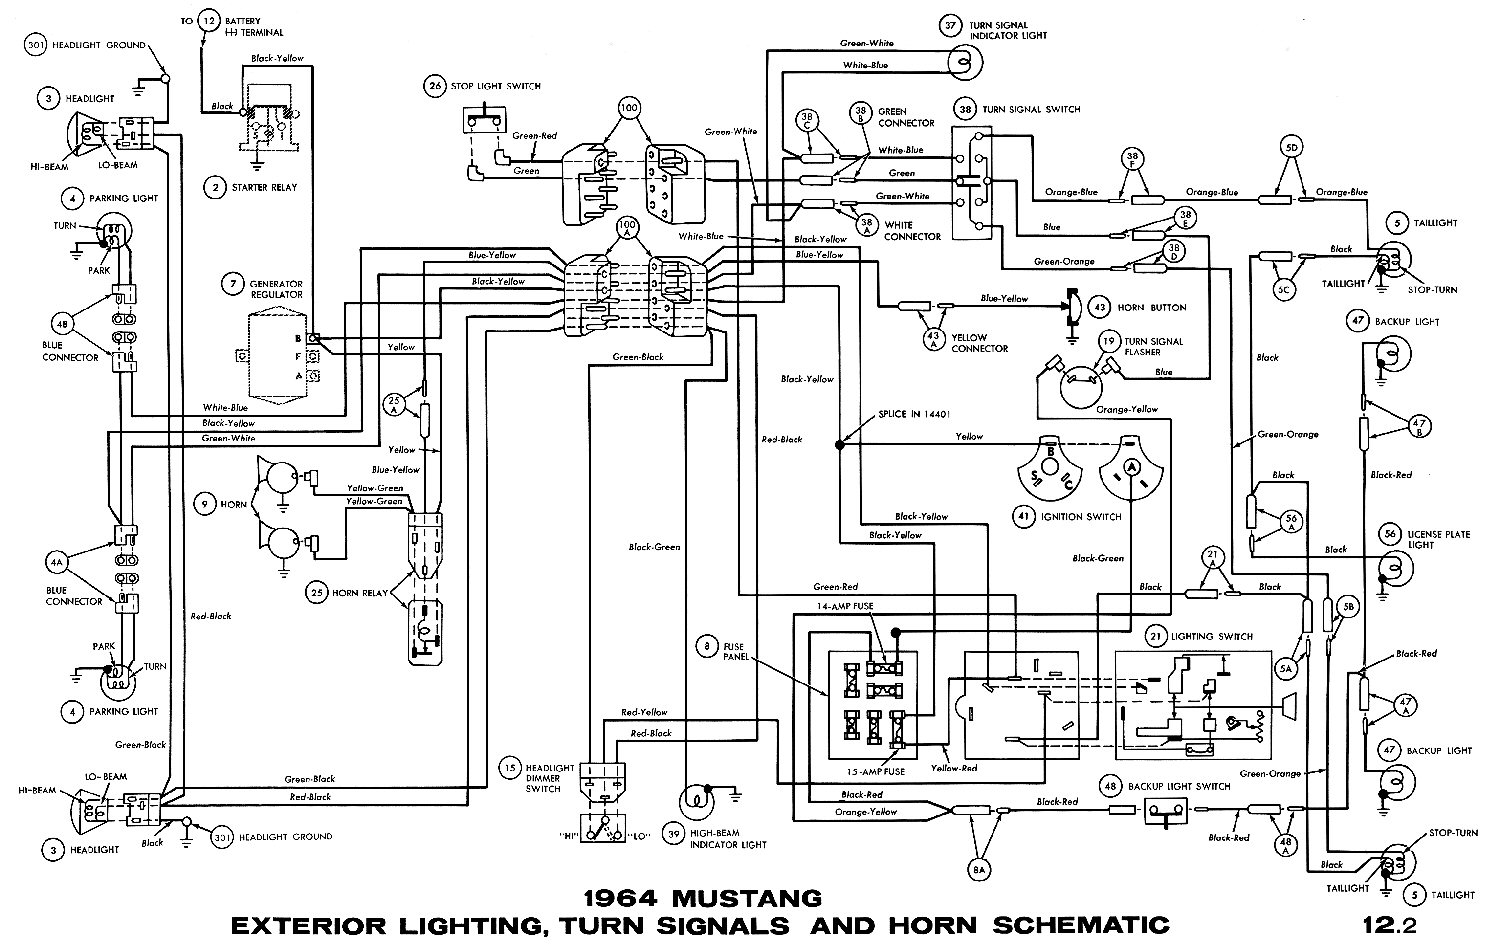 Ford Mustang Wiring Another Blog About Diagram Aspire Starter Relay 1964 Diagrams Average Joe Restoration Rh Averagejoerestoration Com 1993 Harness